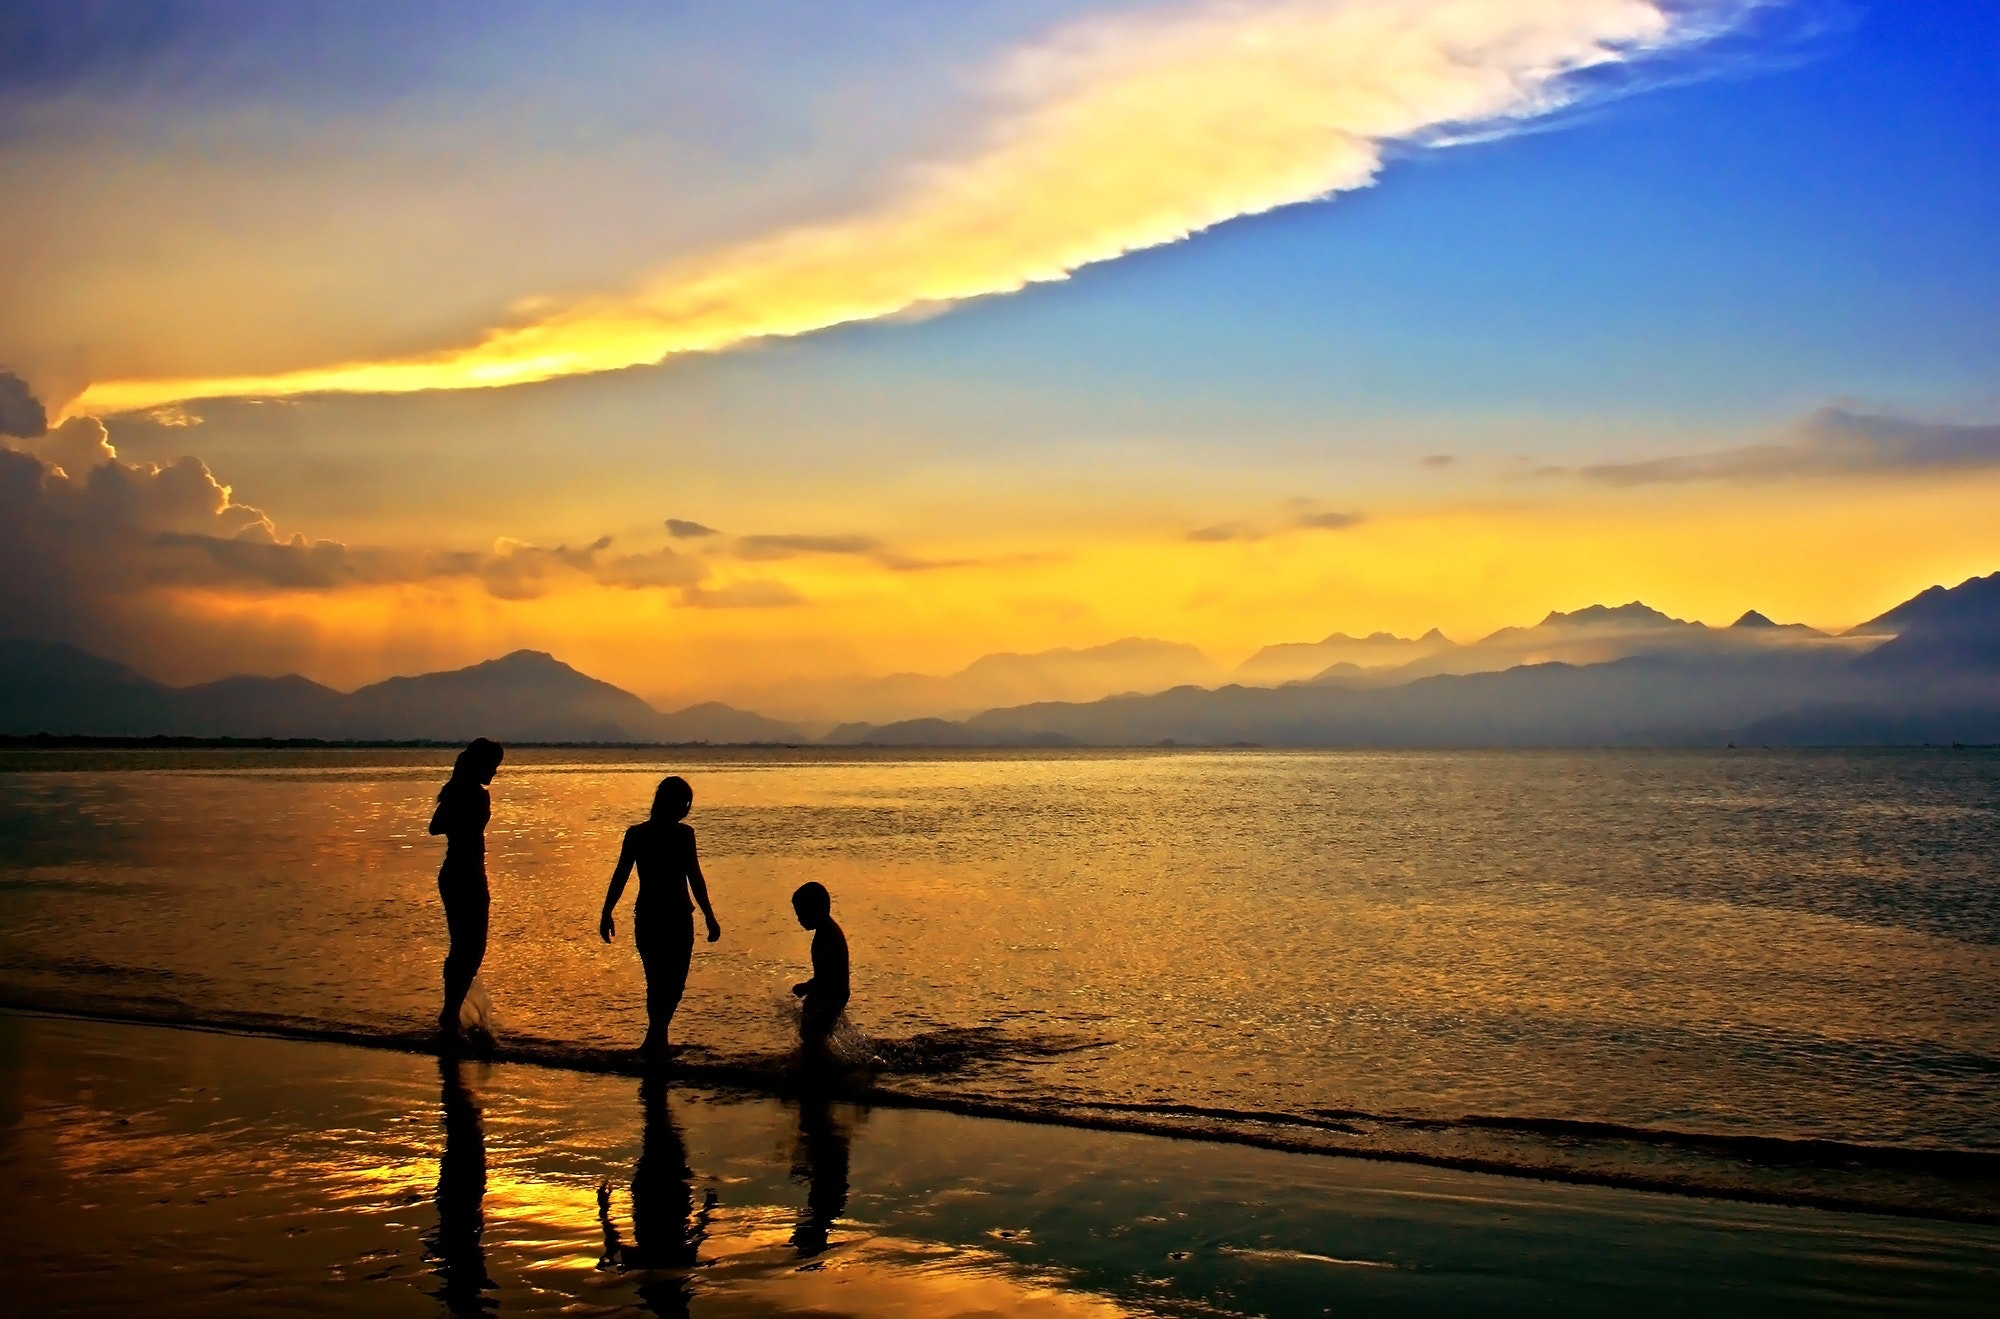 Silhouettes of 3 people in body of water during dawn photo